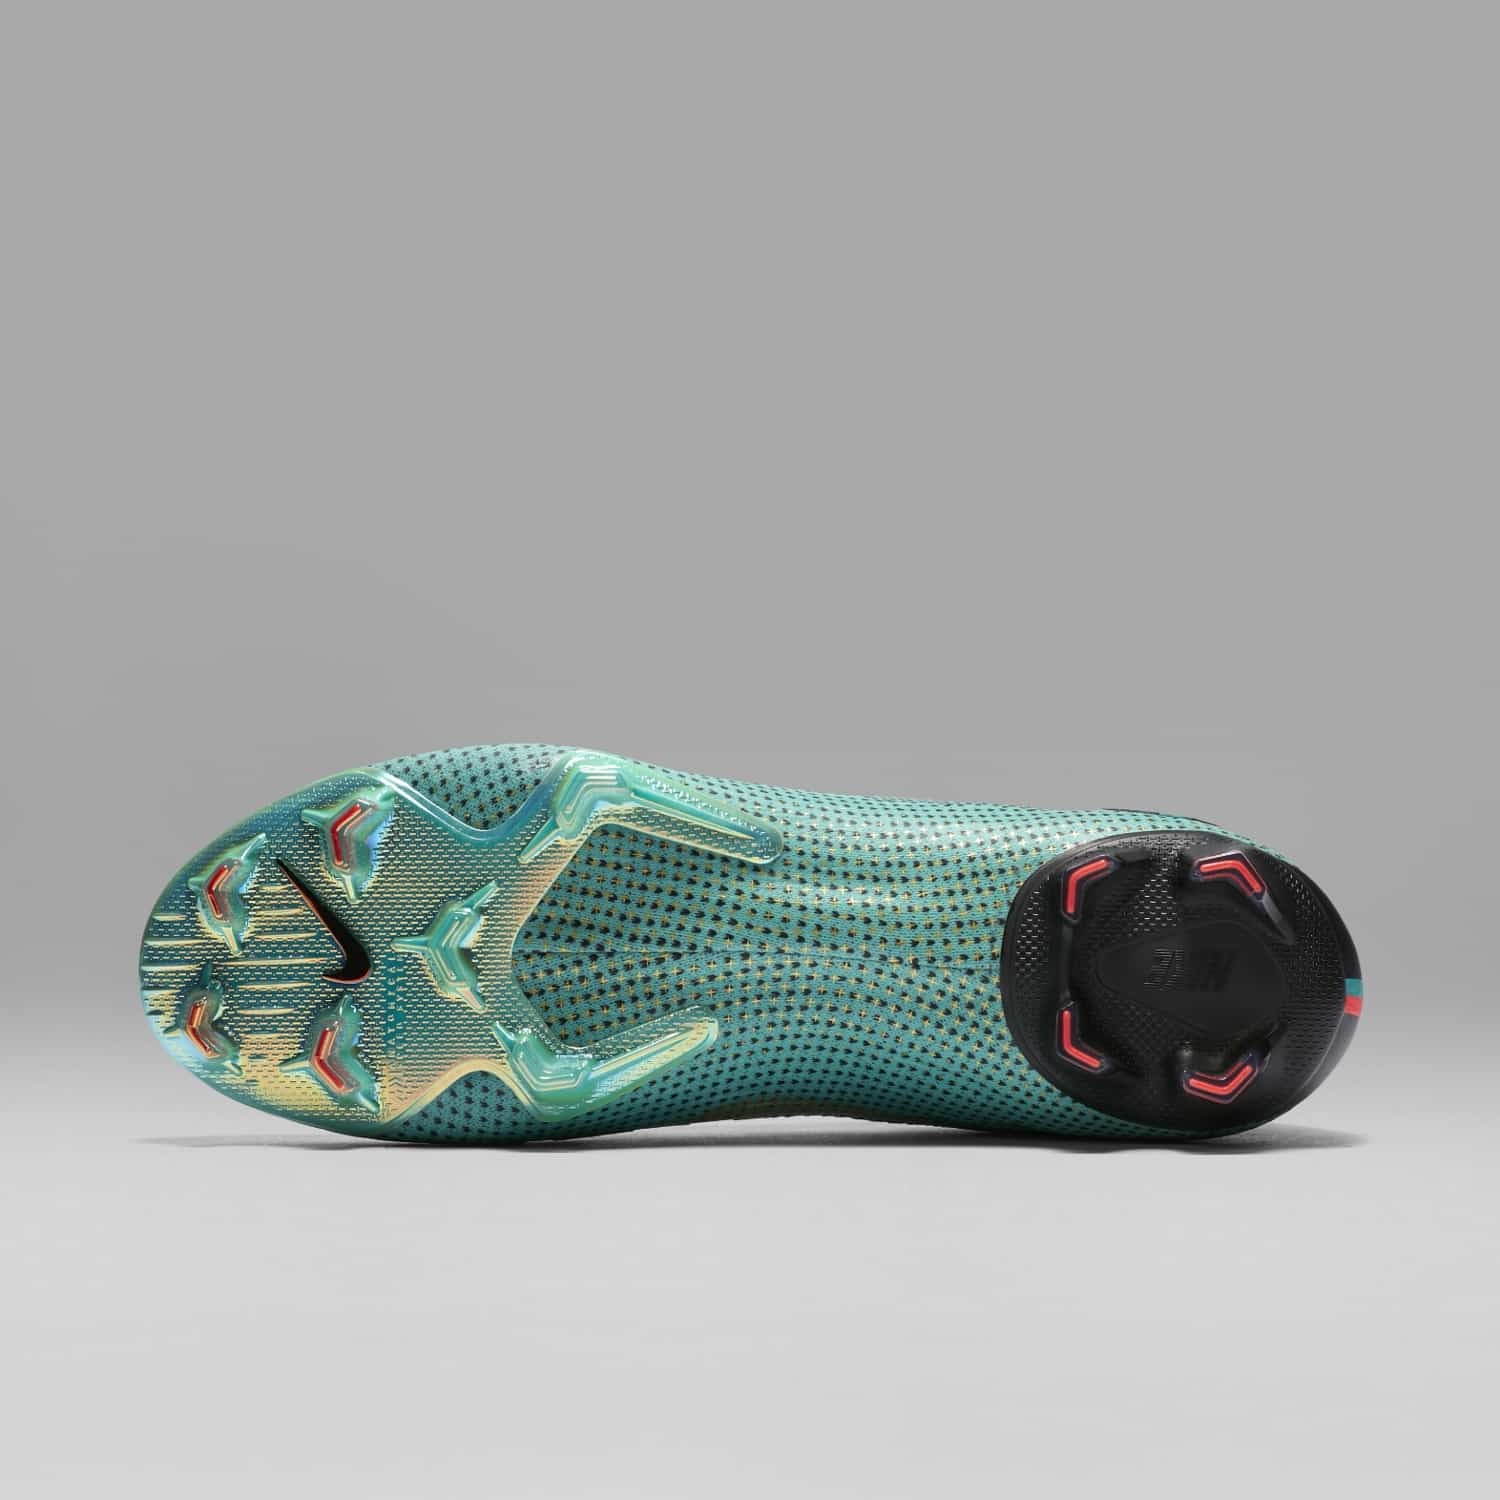 chaussures-football-Nike-Mercurial-Superfly-CR7-Chapitre-6-Born-Leader-img8